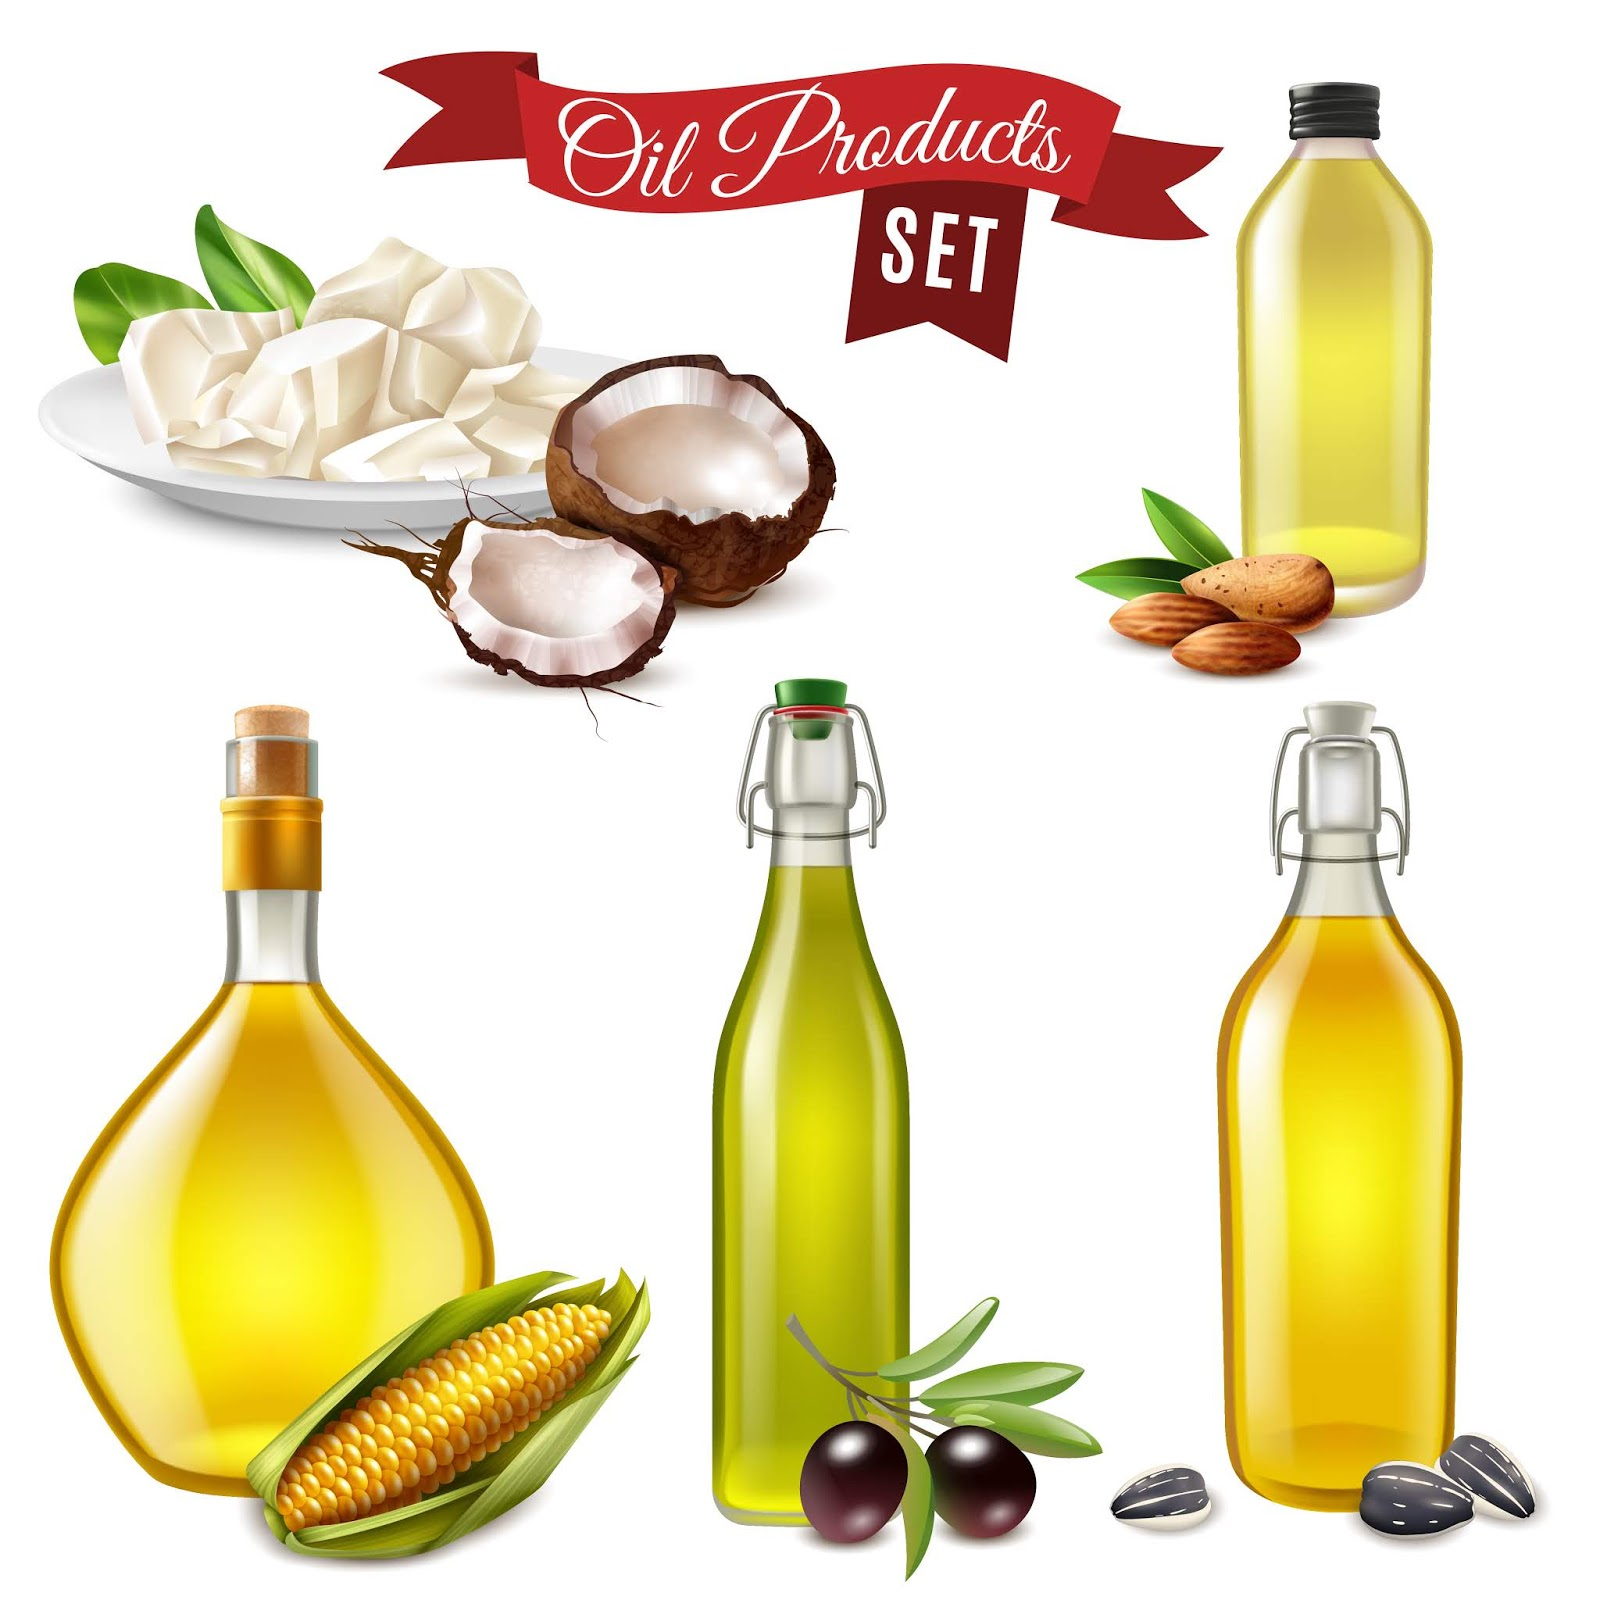 Download Victor Designs files for beautiful olive oil